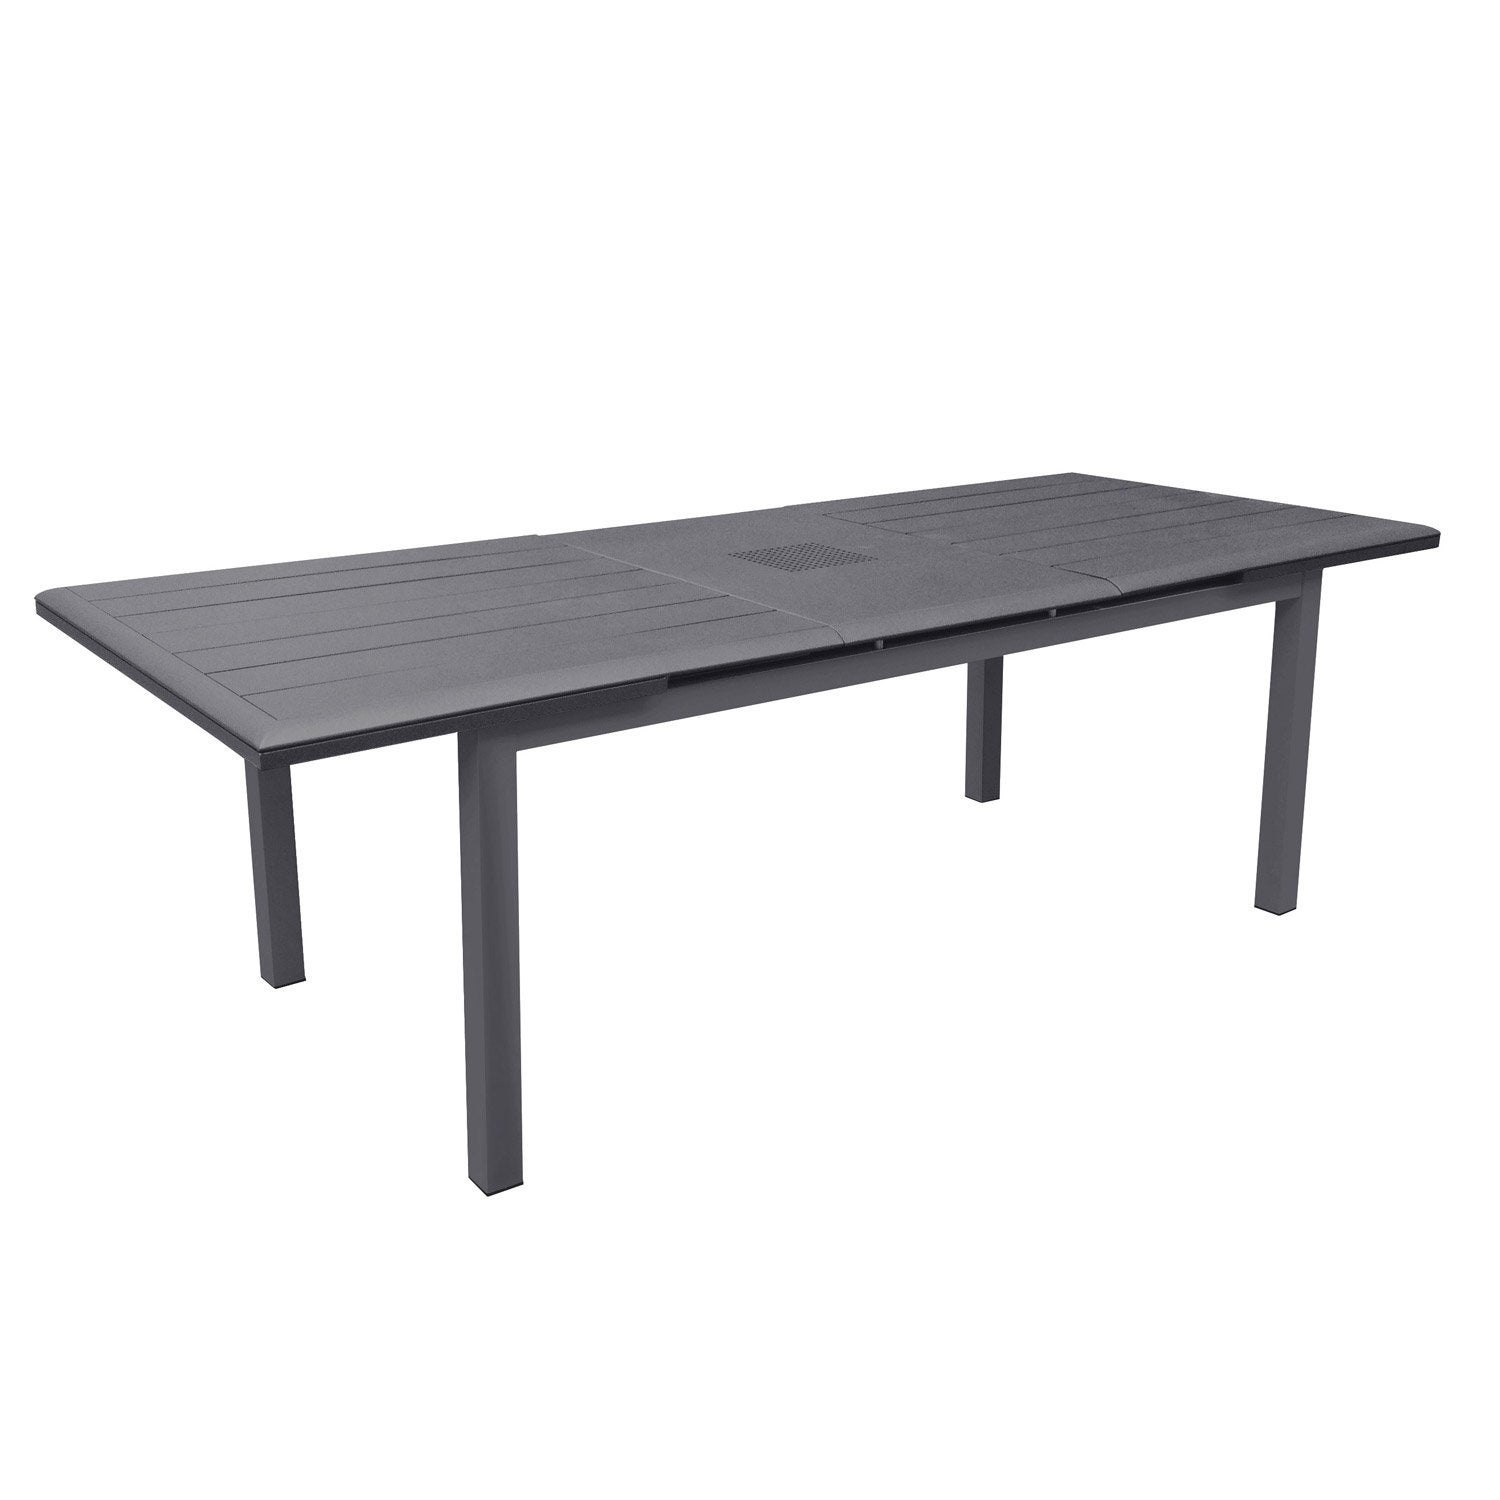 Table de jardin louisiane rectangulaire gris 6 8 personnes leroy merlin - Table de cuisine 6 personnes ...